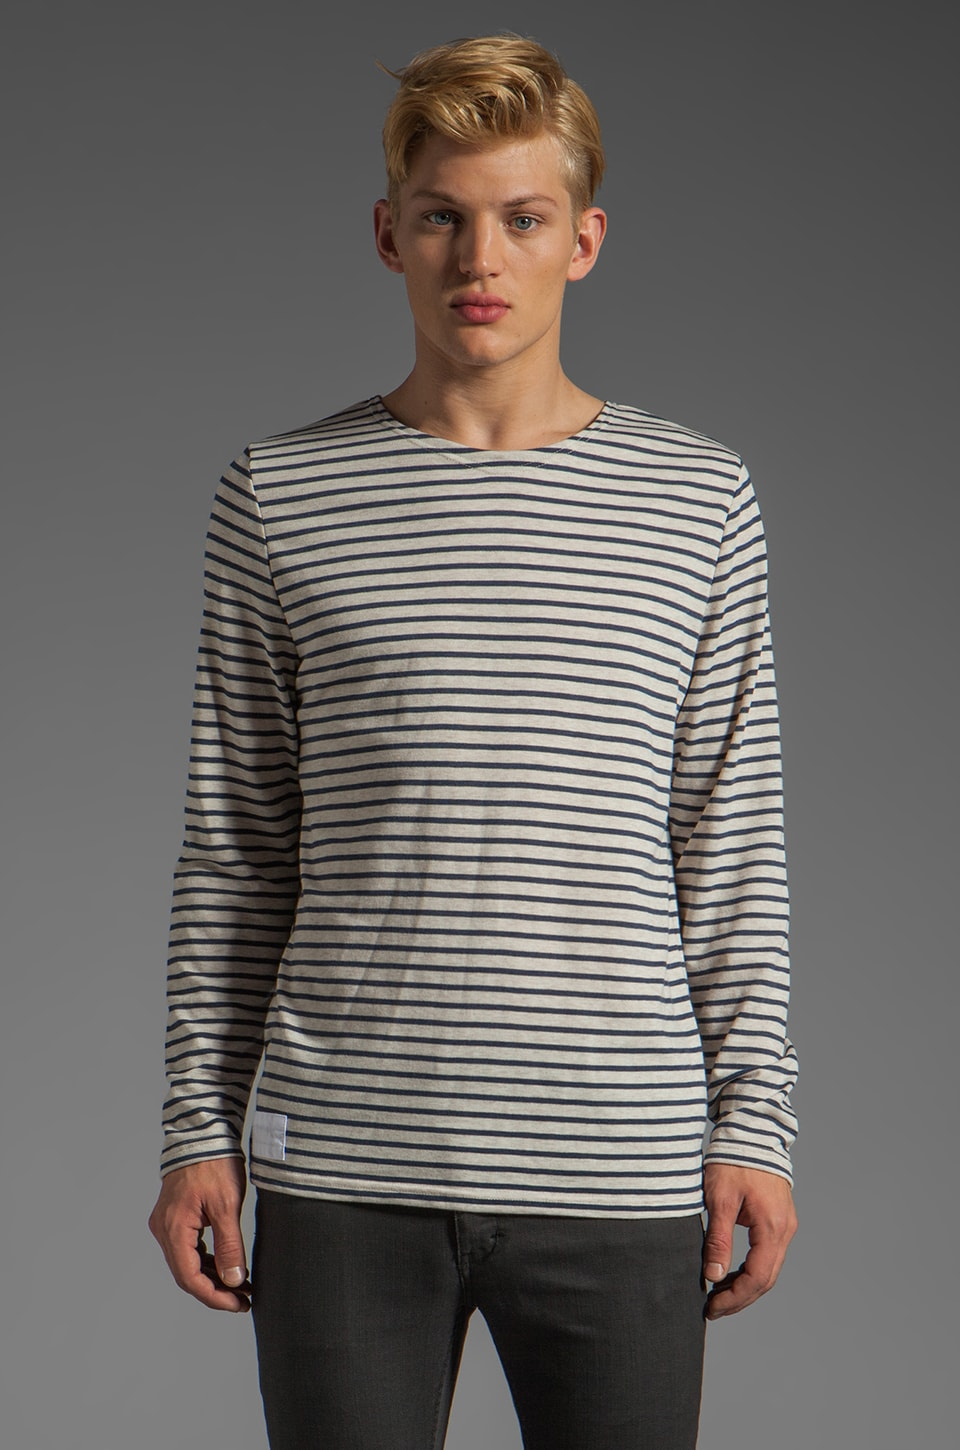 NEUW Sailor List Tee in Indigo